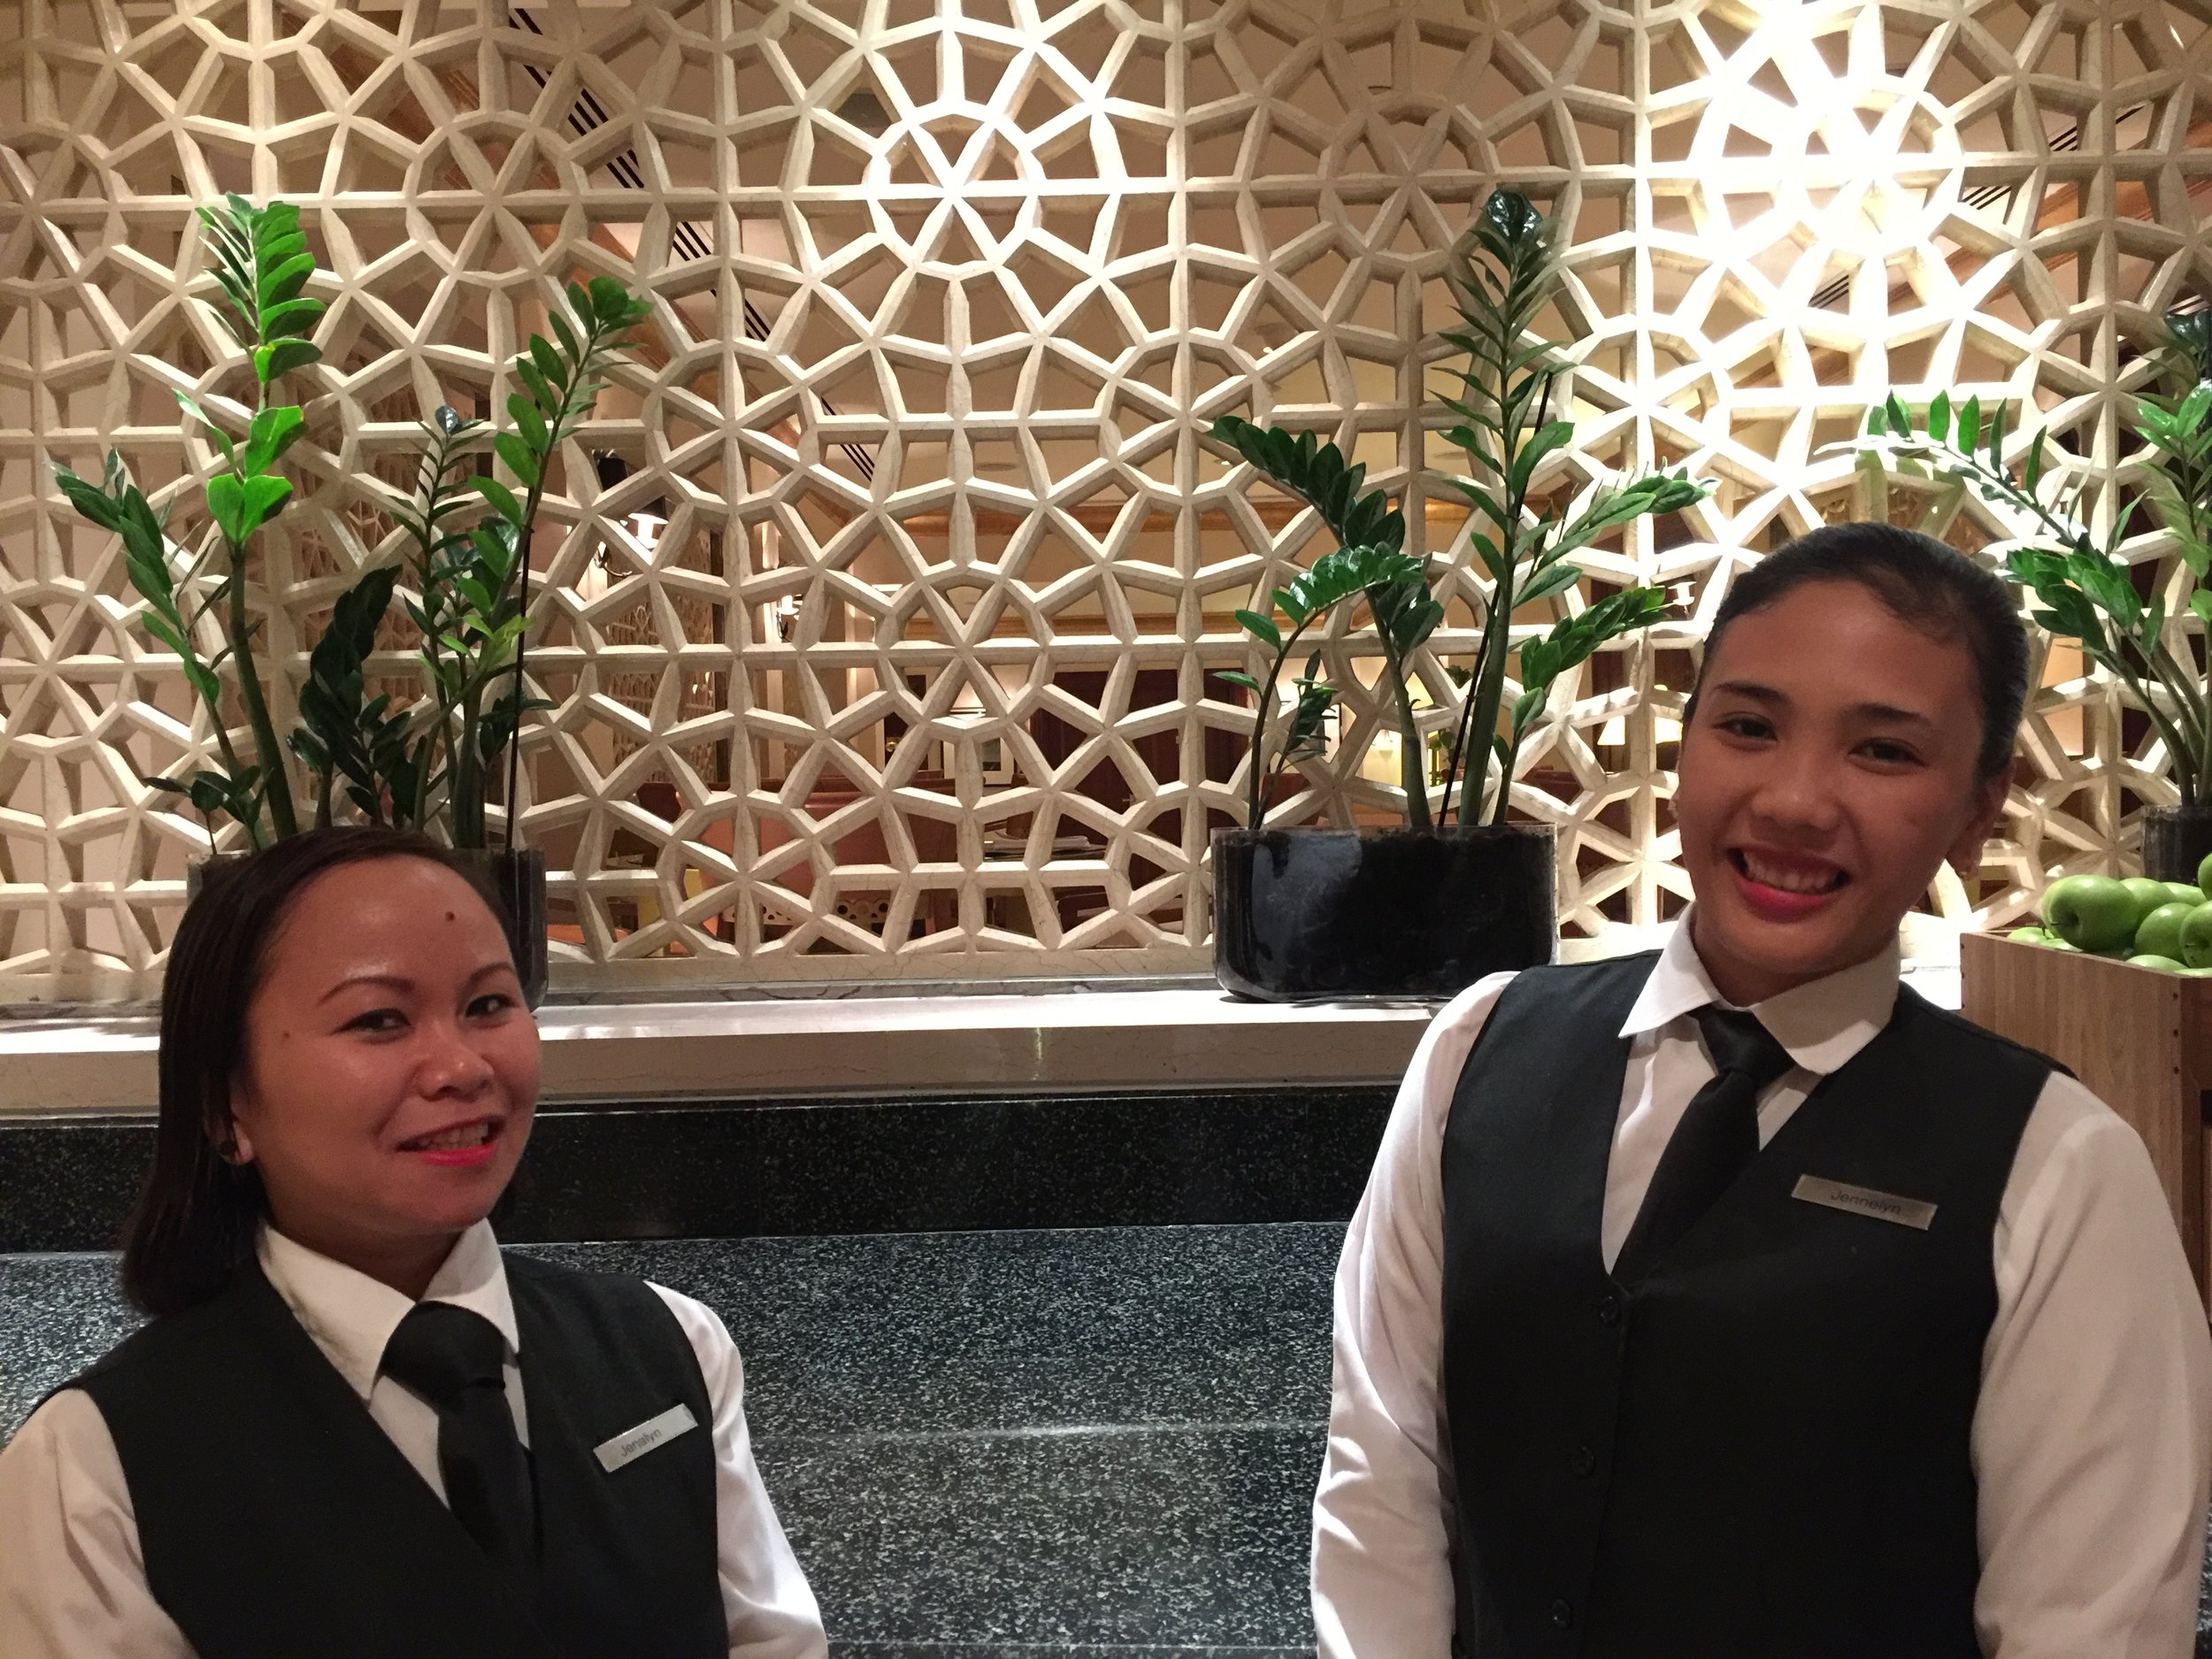 Ms. Jhennie Lactaoen and Ms. Jenalyn Calacat - Grand Club Lounge Staff